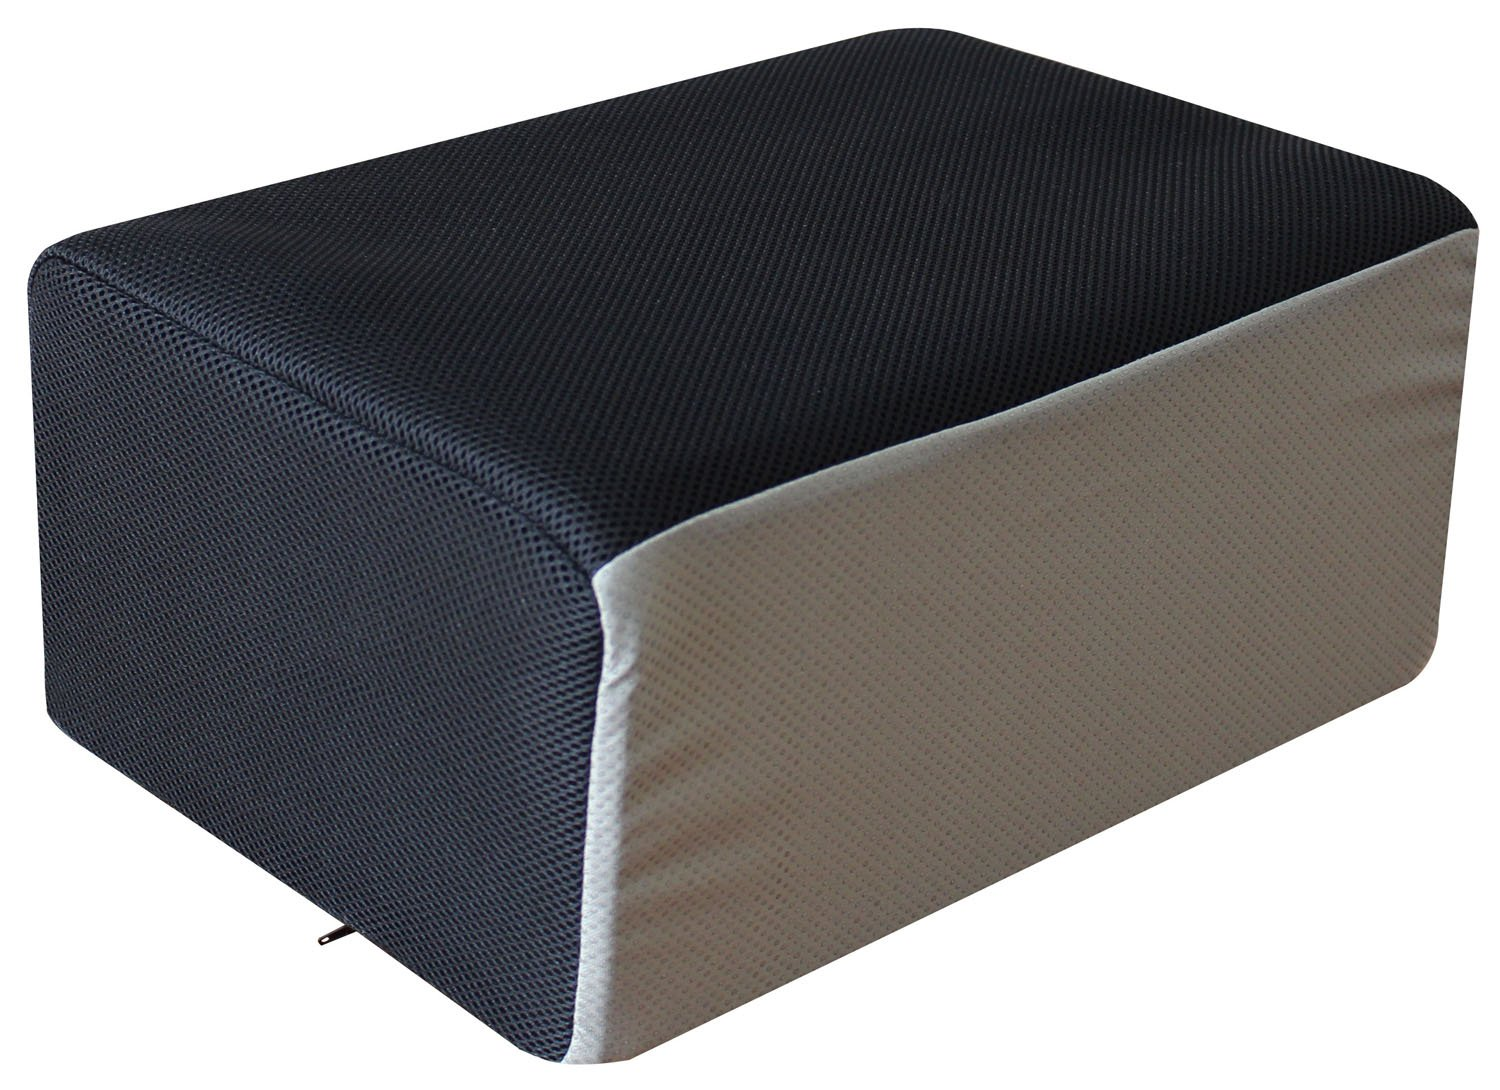 InteVision Foot Cushion (Special Edition) with Non-Slip Nylon Cover (17.5'' x 12'' x 8'') - Designed to Support Your Feet&Legs Comfortably While Sitting on a Bar Stool, Counter-Height Chair in a Kitchen